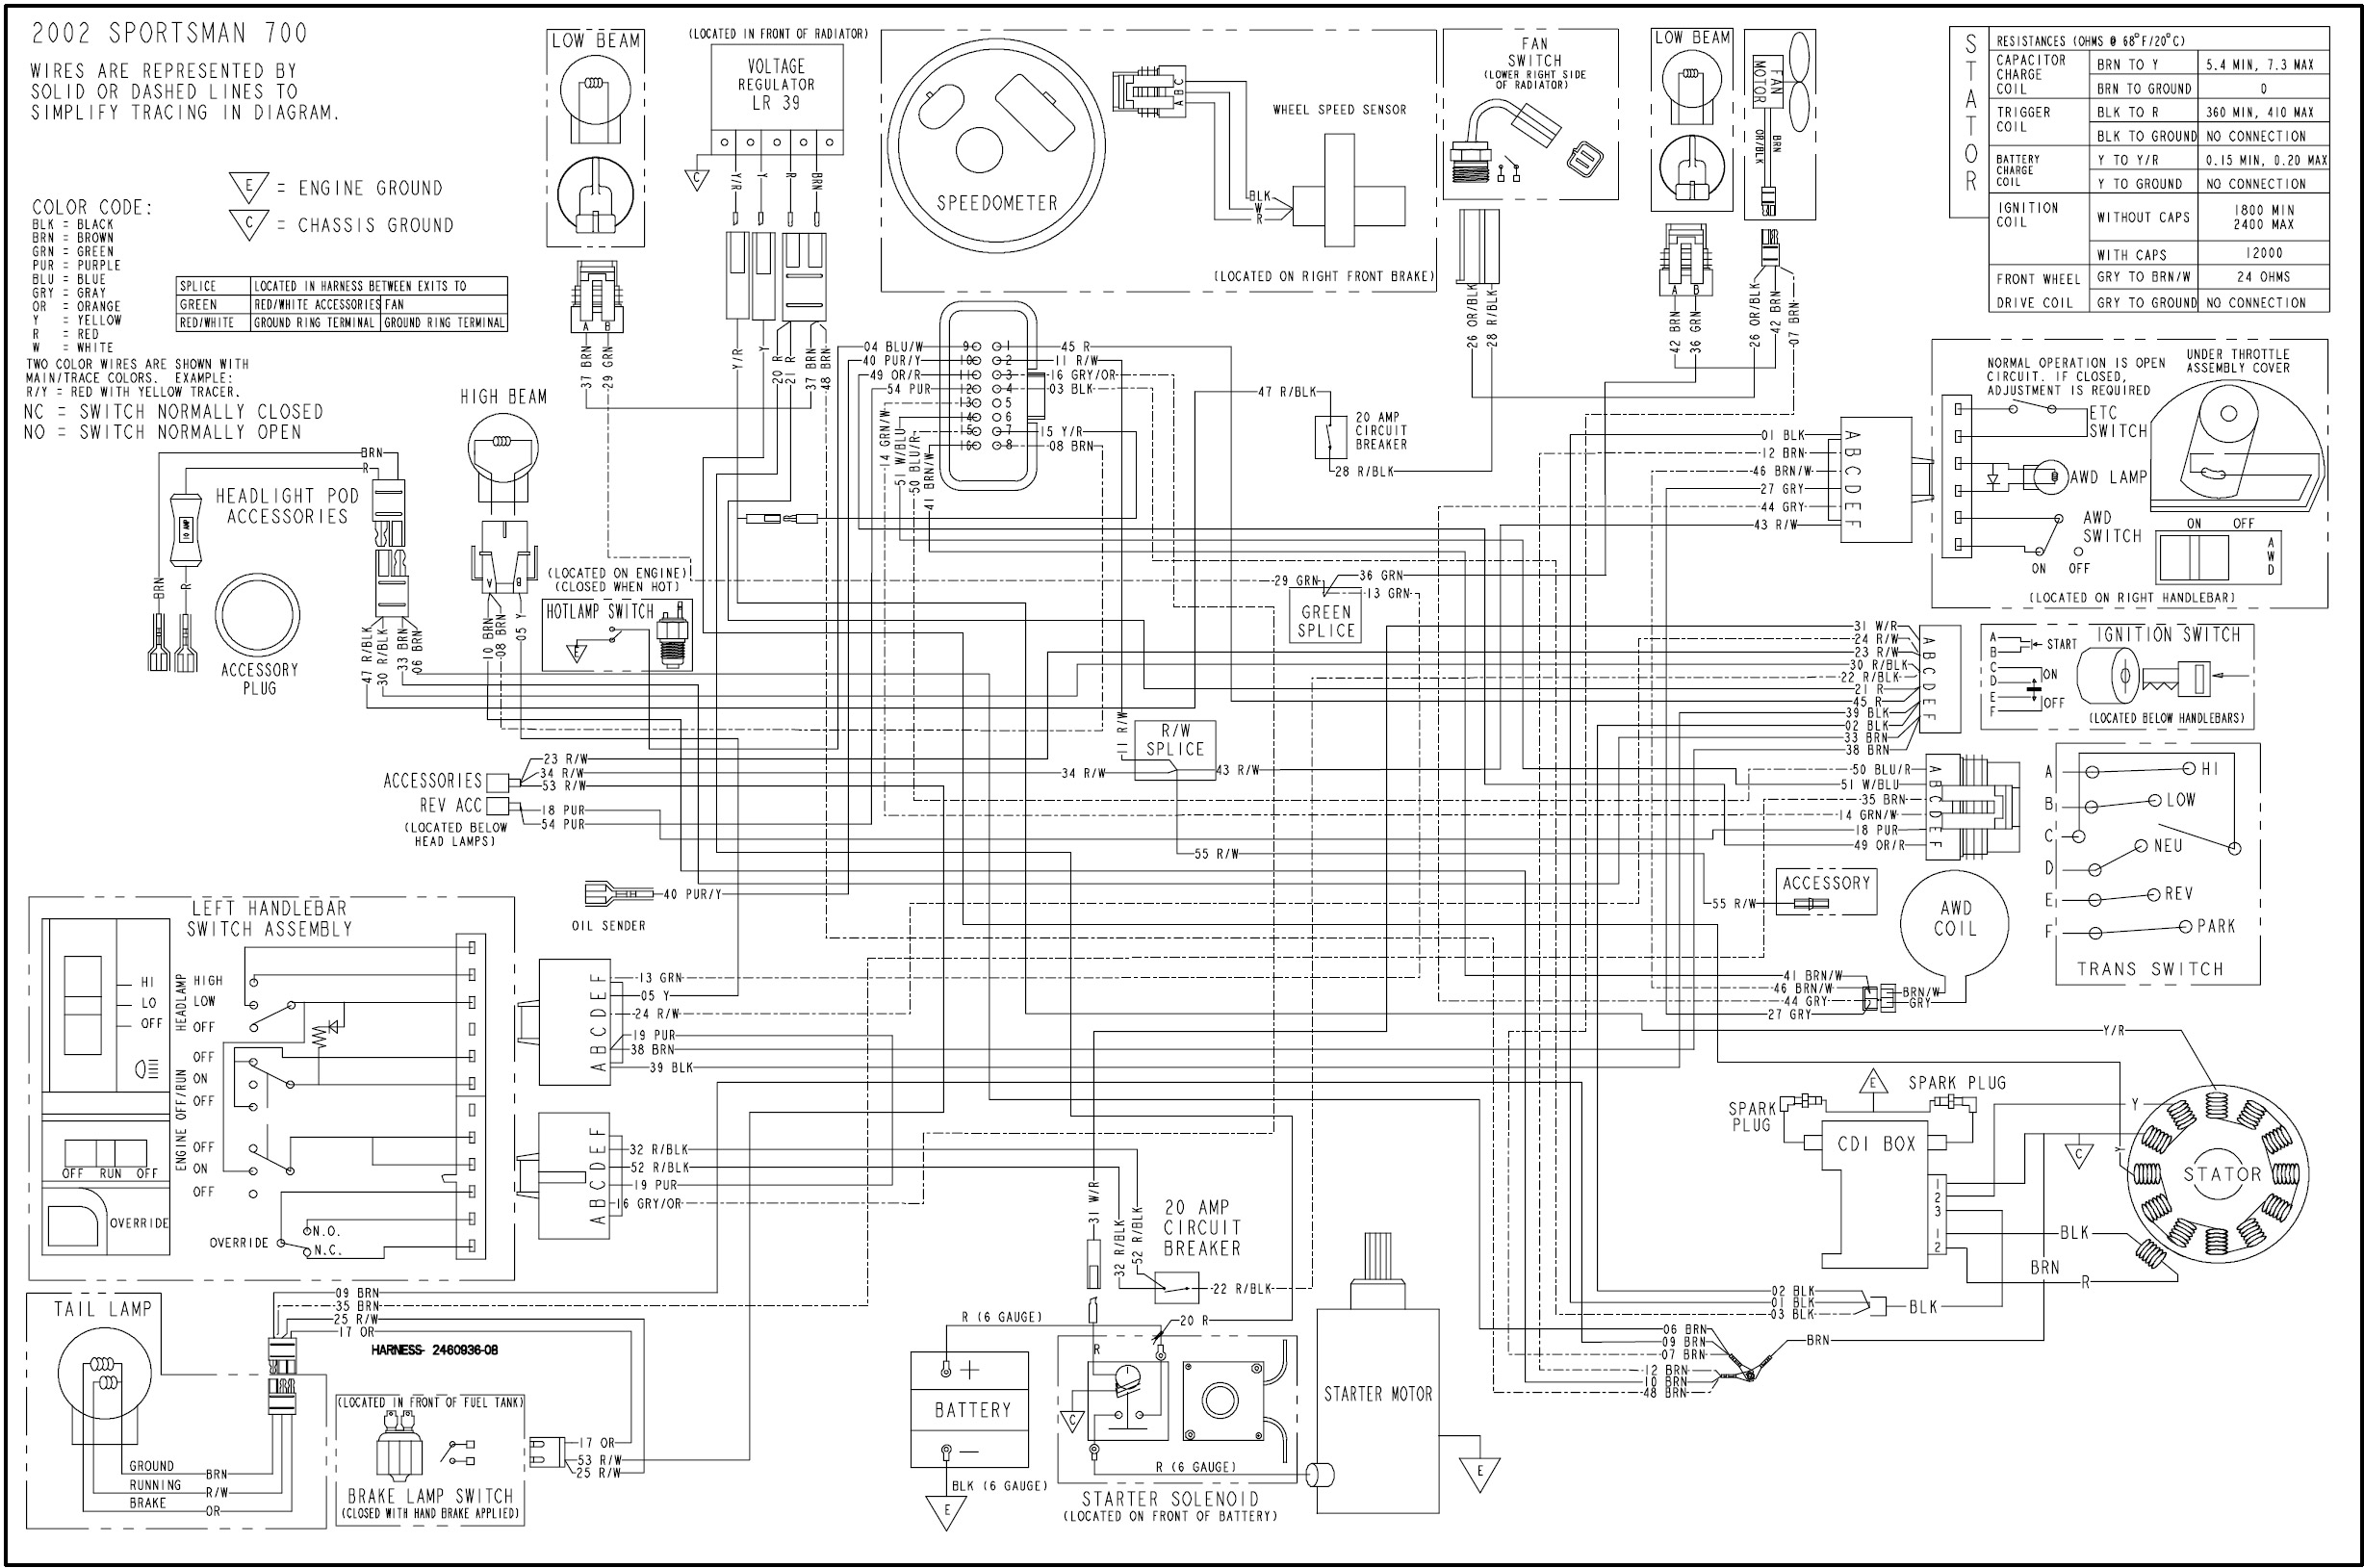 wd_700_02 wiring diagram 2003 polaris 600 atv readingrat net polaris 500 wiring diagram at nearapp.co